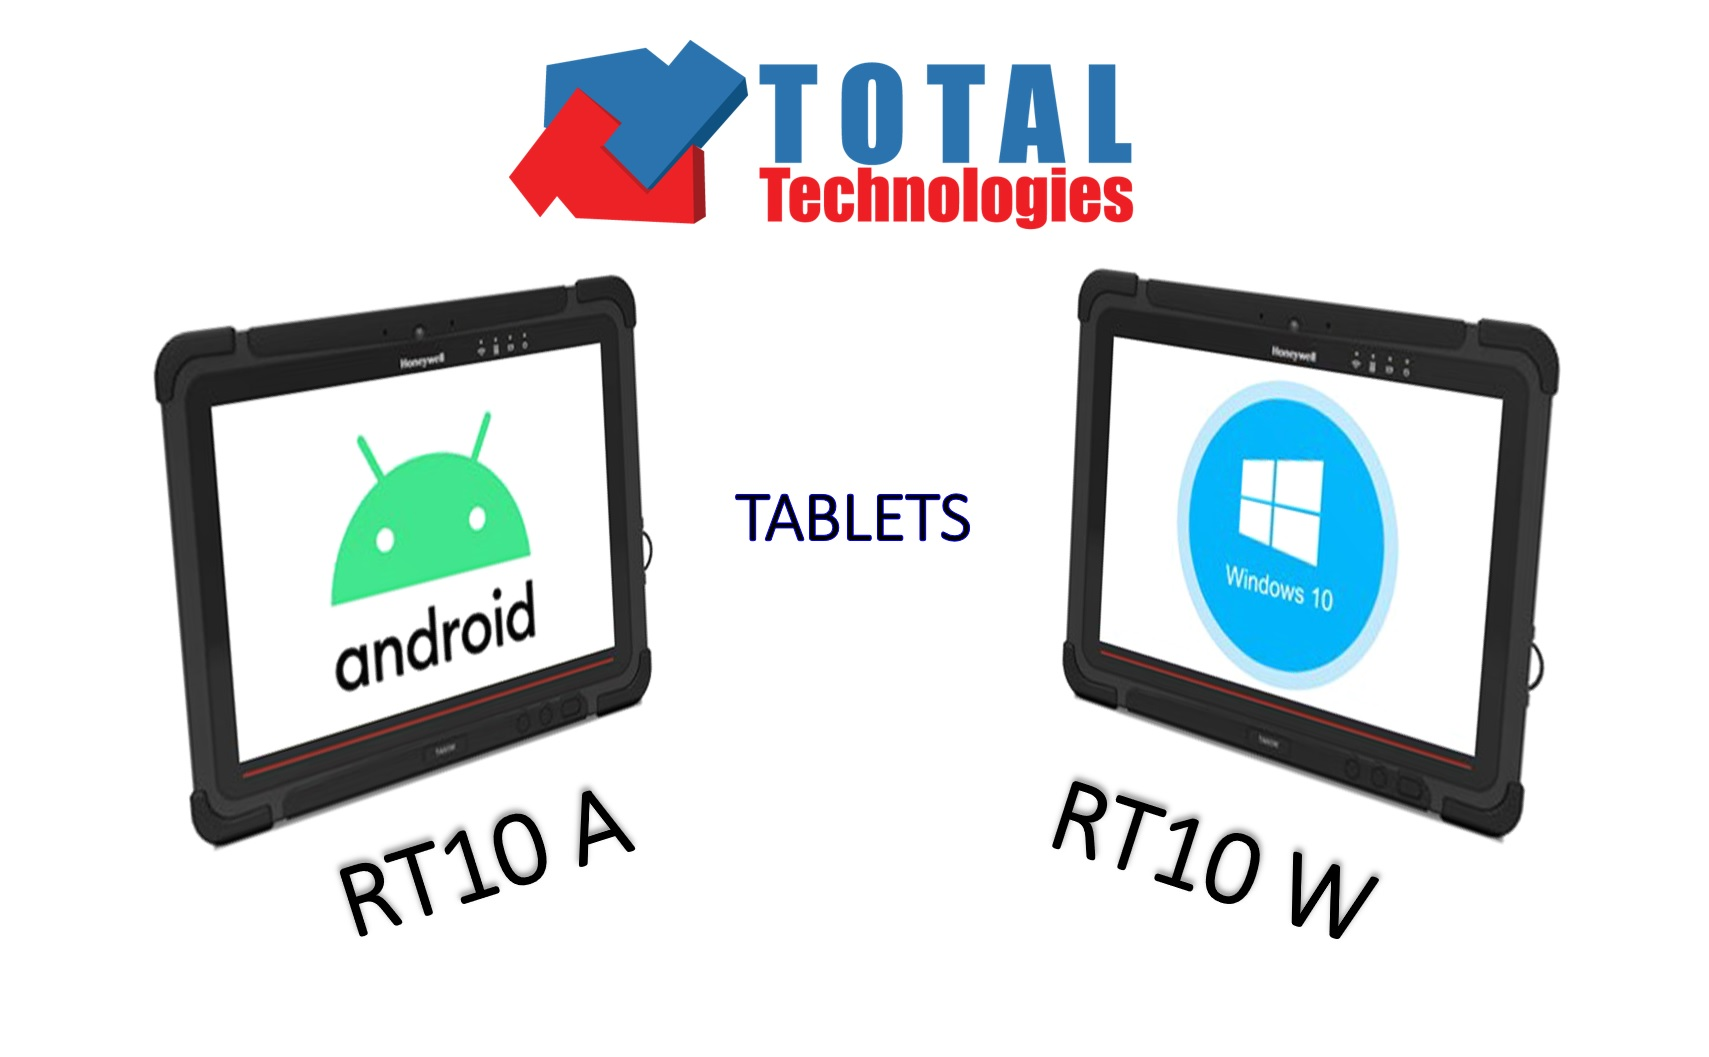 Total Technologies îți pune la dispoziție două variante de tablete RT10, Android și Windows